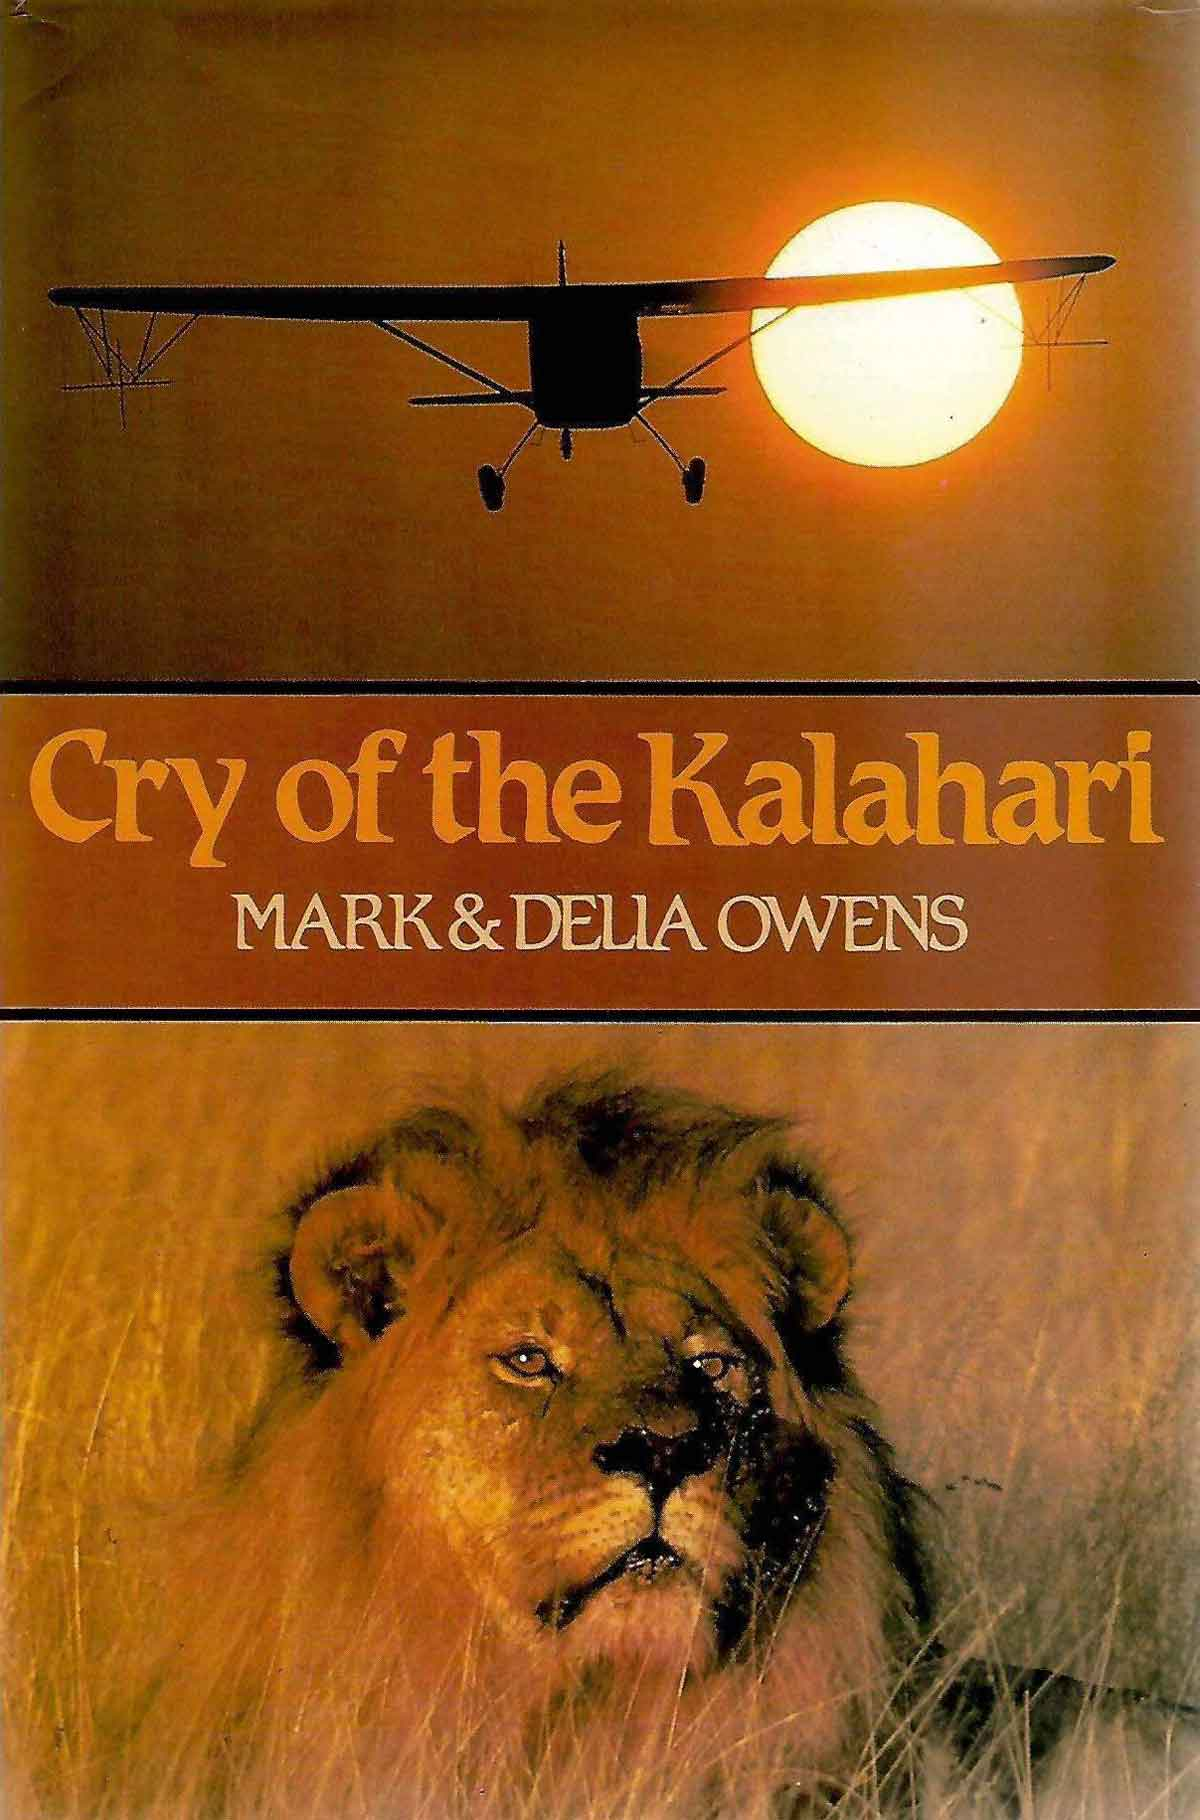 8 safari themed books, 8 Safari Themed Books to Read Before Going to Africa